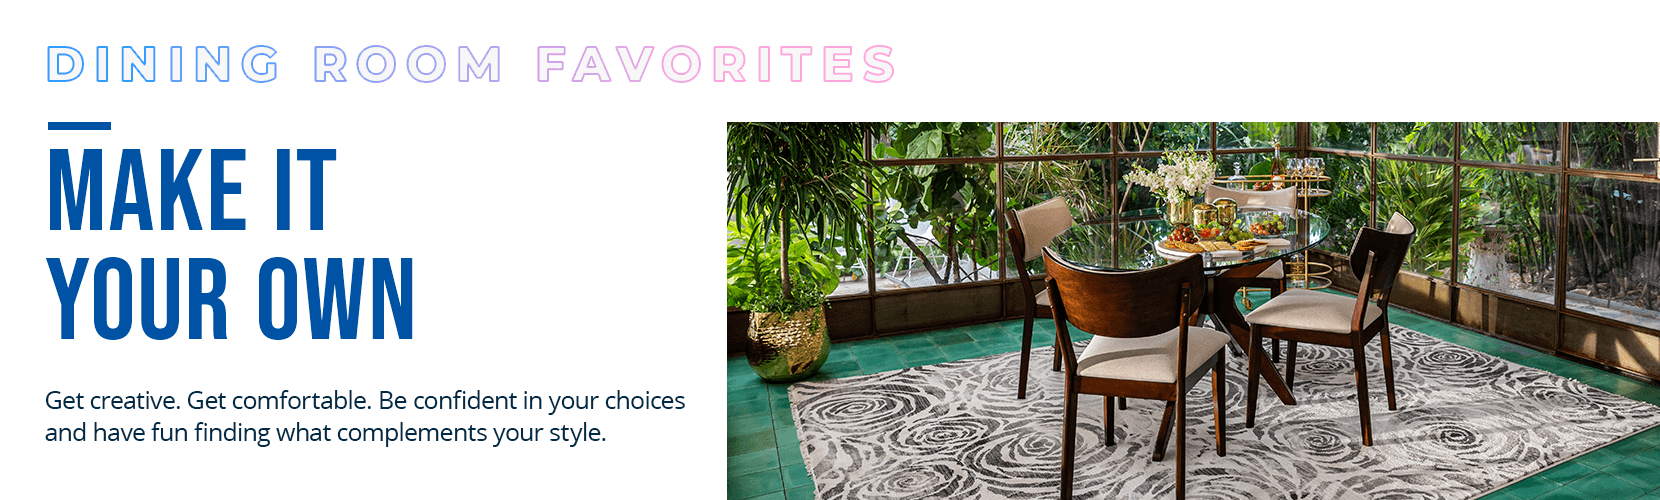 dining room favorites. make it your own. get creative. get comfortable. so be confident in your choices and have fun finding what complements your style